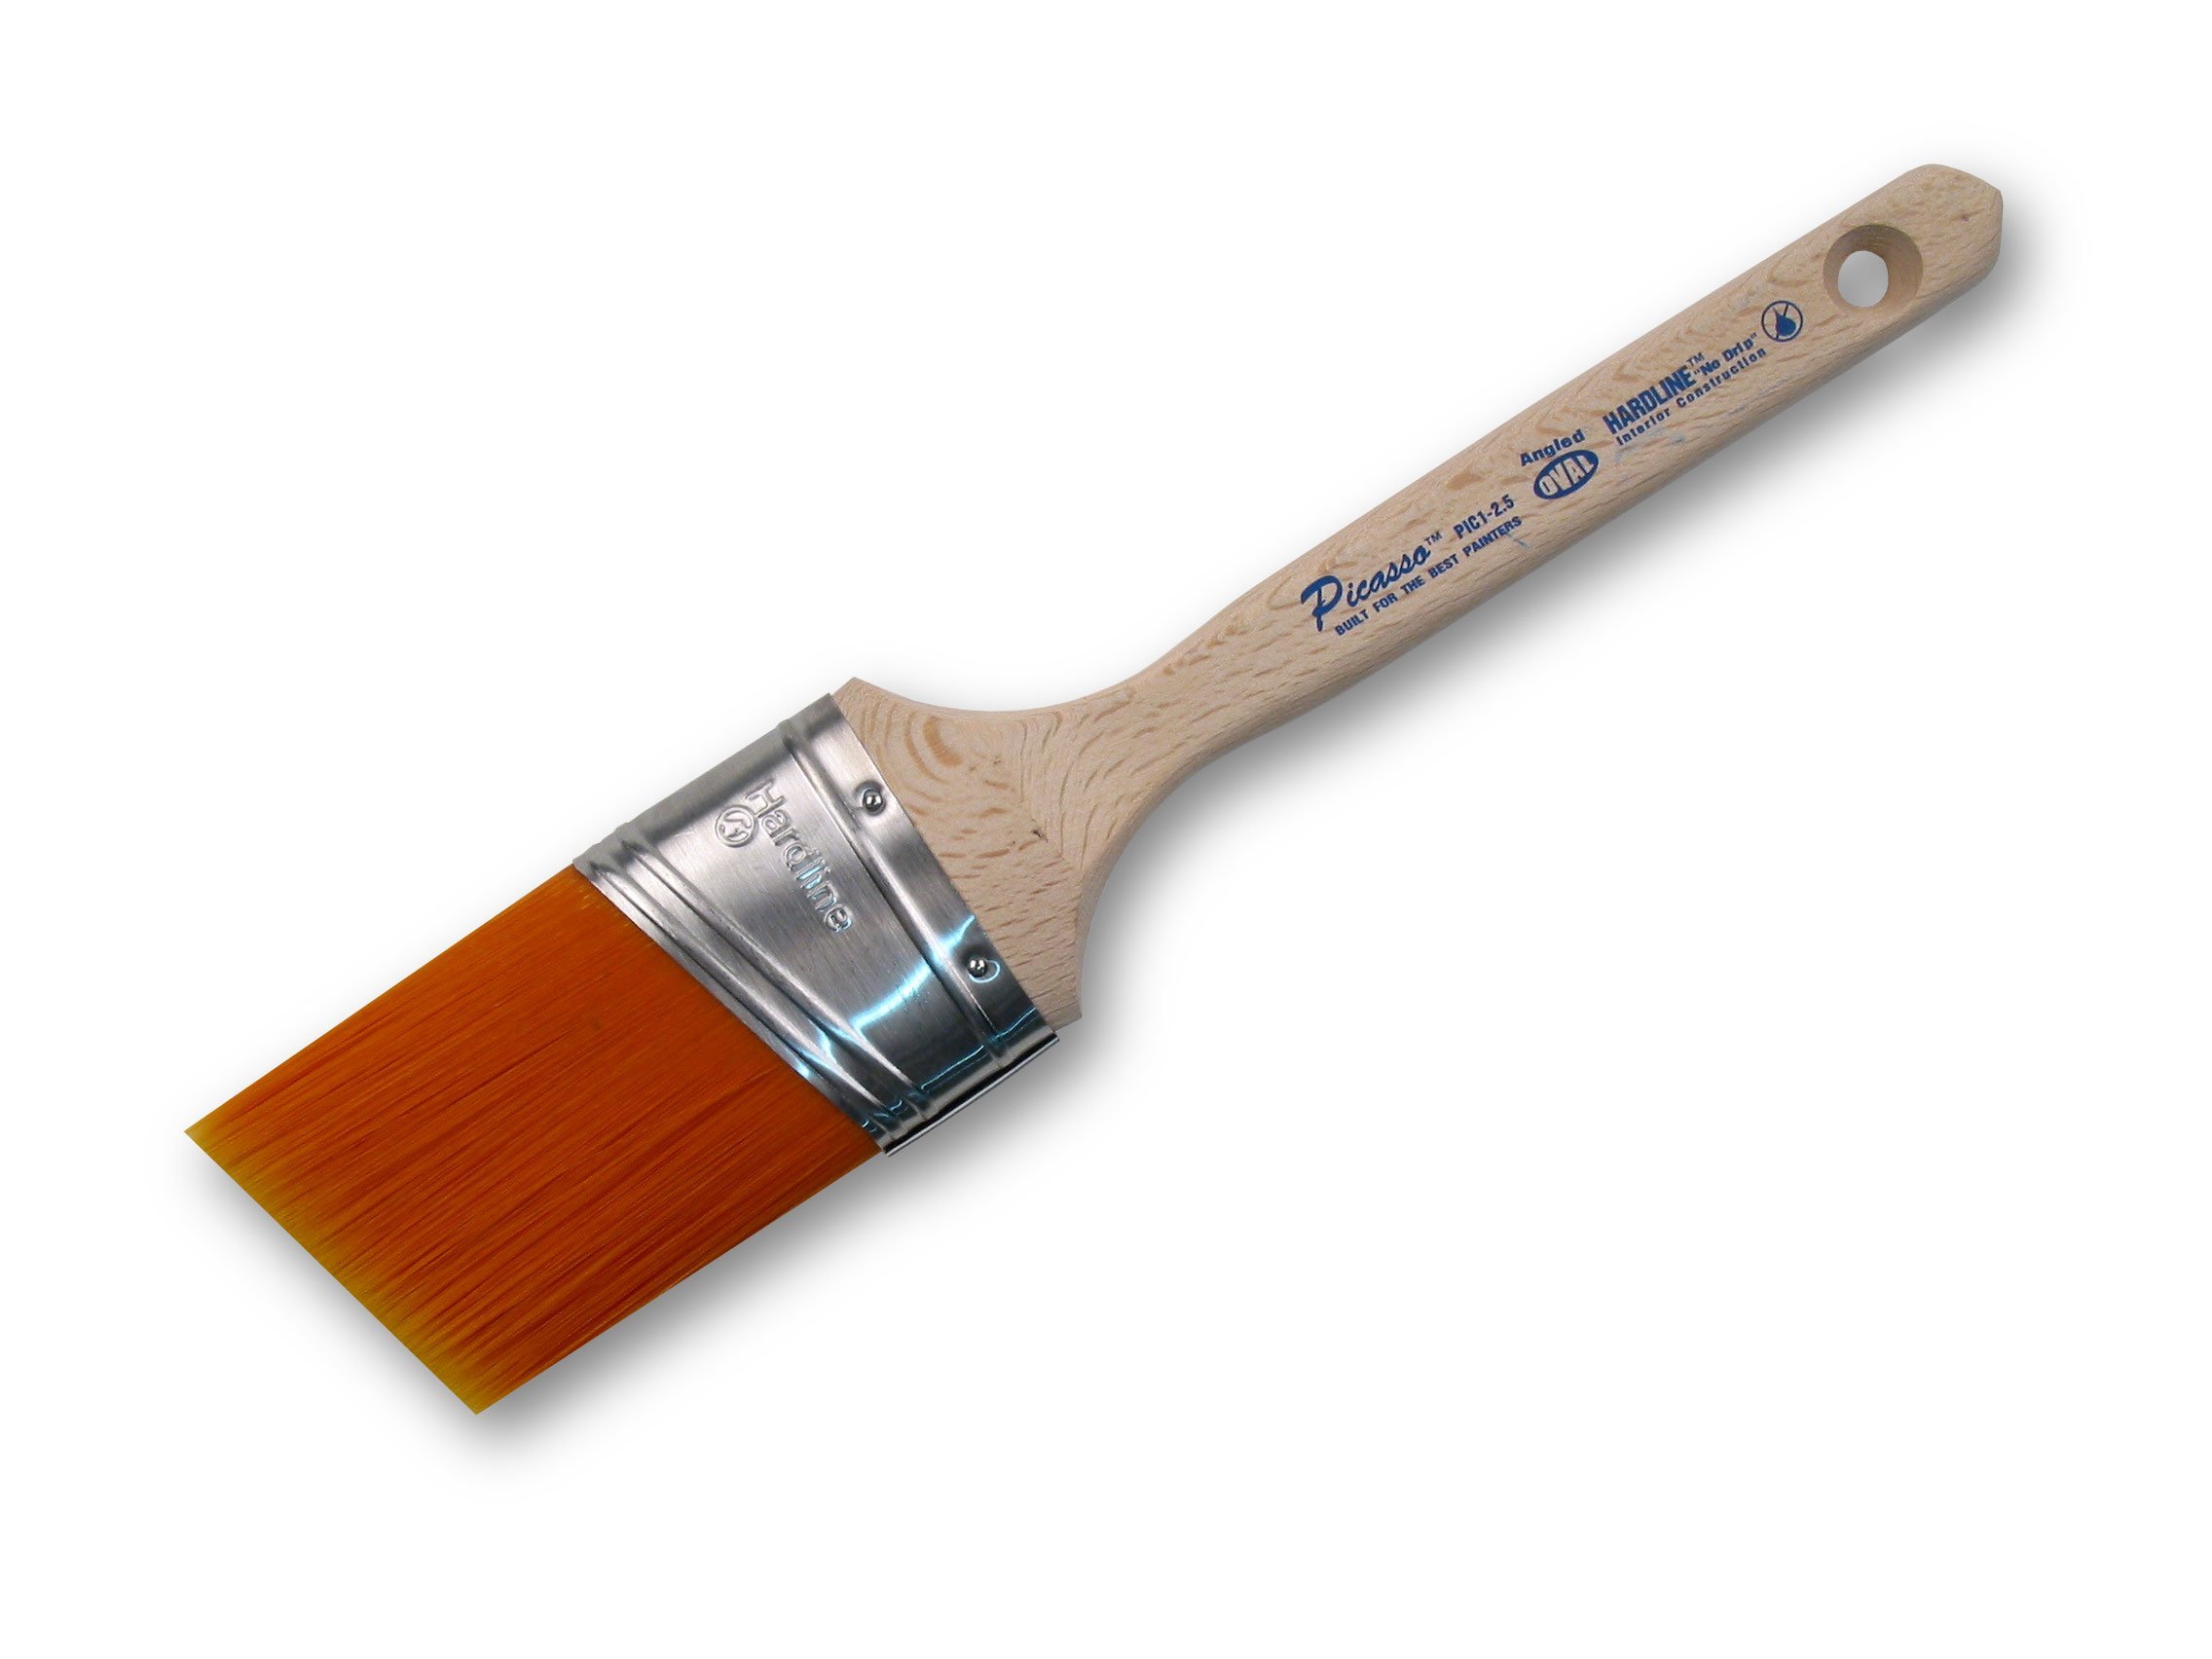 Proform Technologies PIC11-2.5 2-1/2-Inch Chisel Picasso Oval Angled Cut Paint Brush